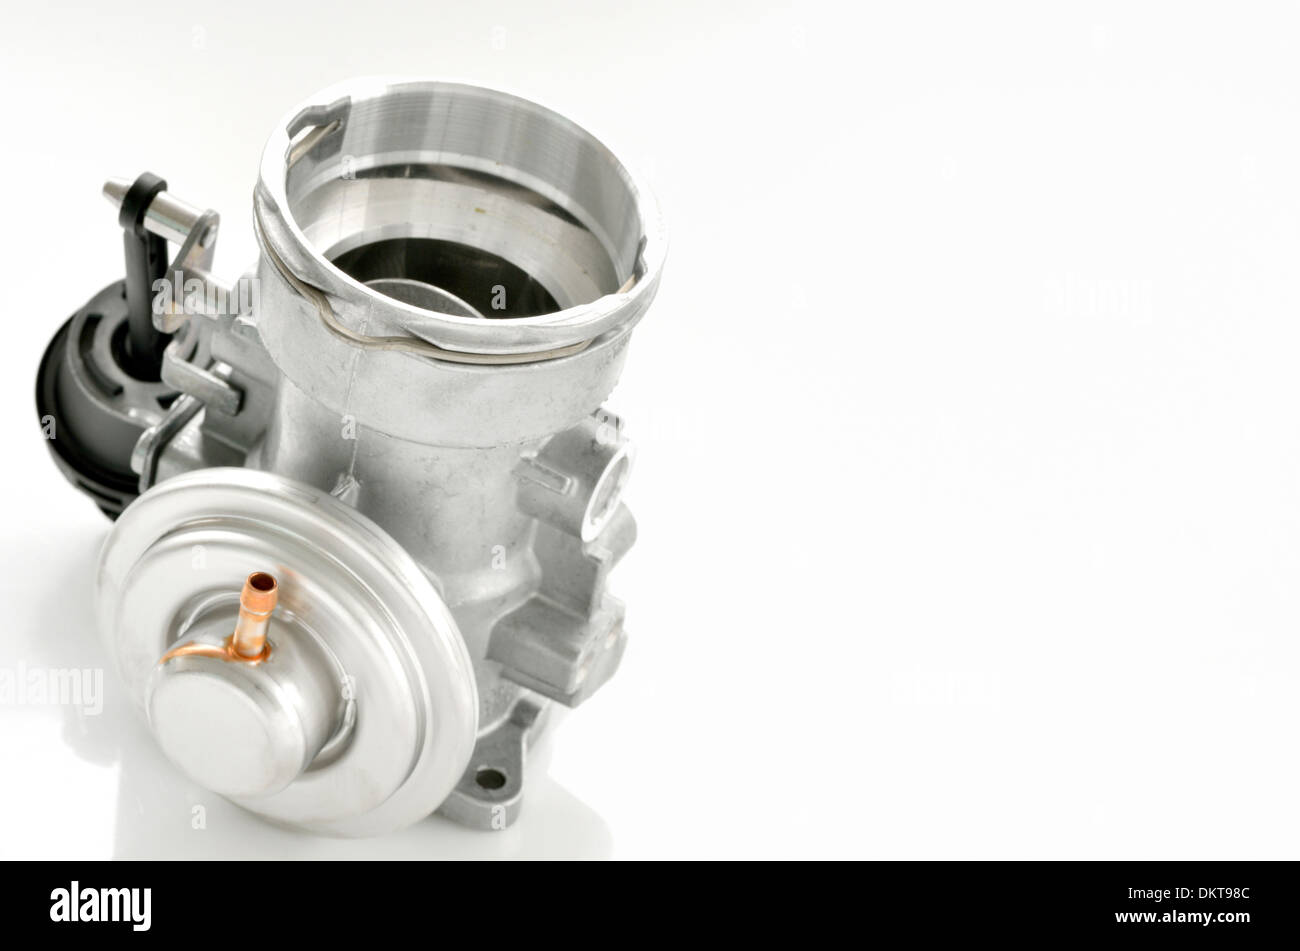 details of throttle isolated on white background Stock Photo